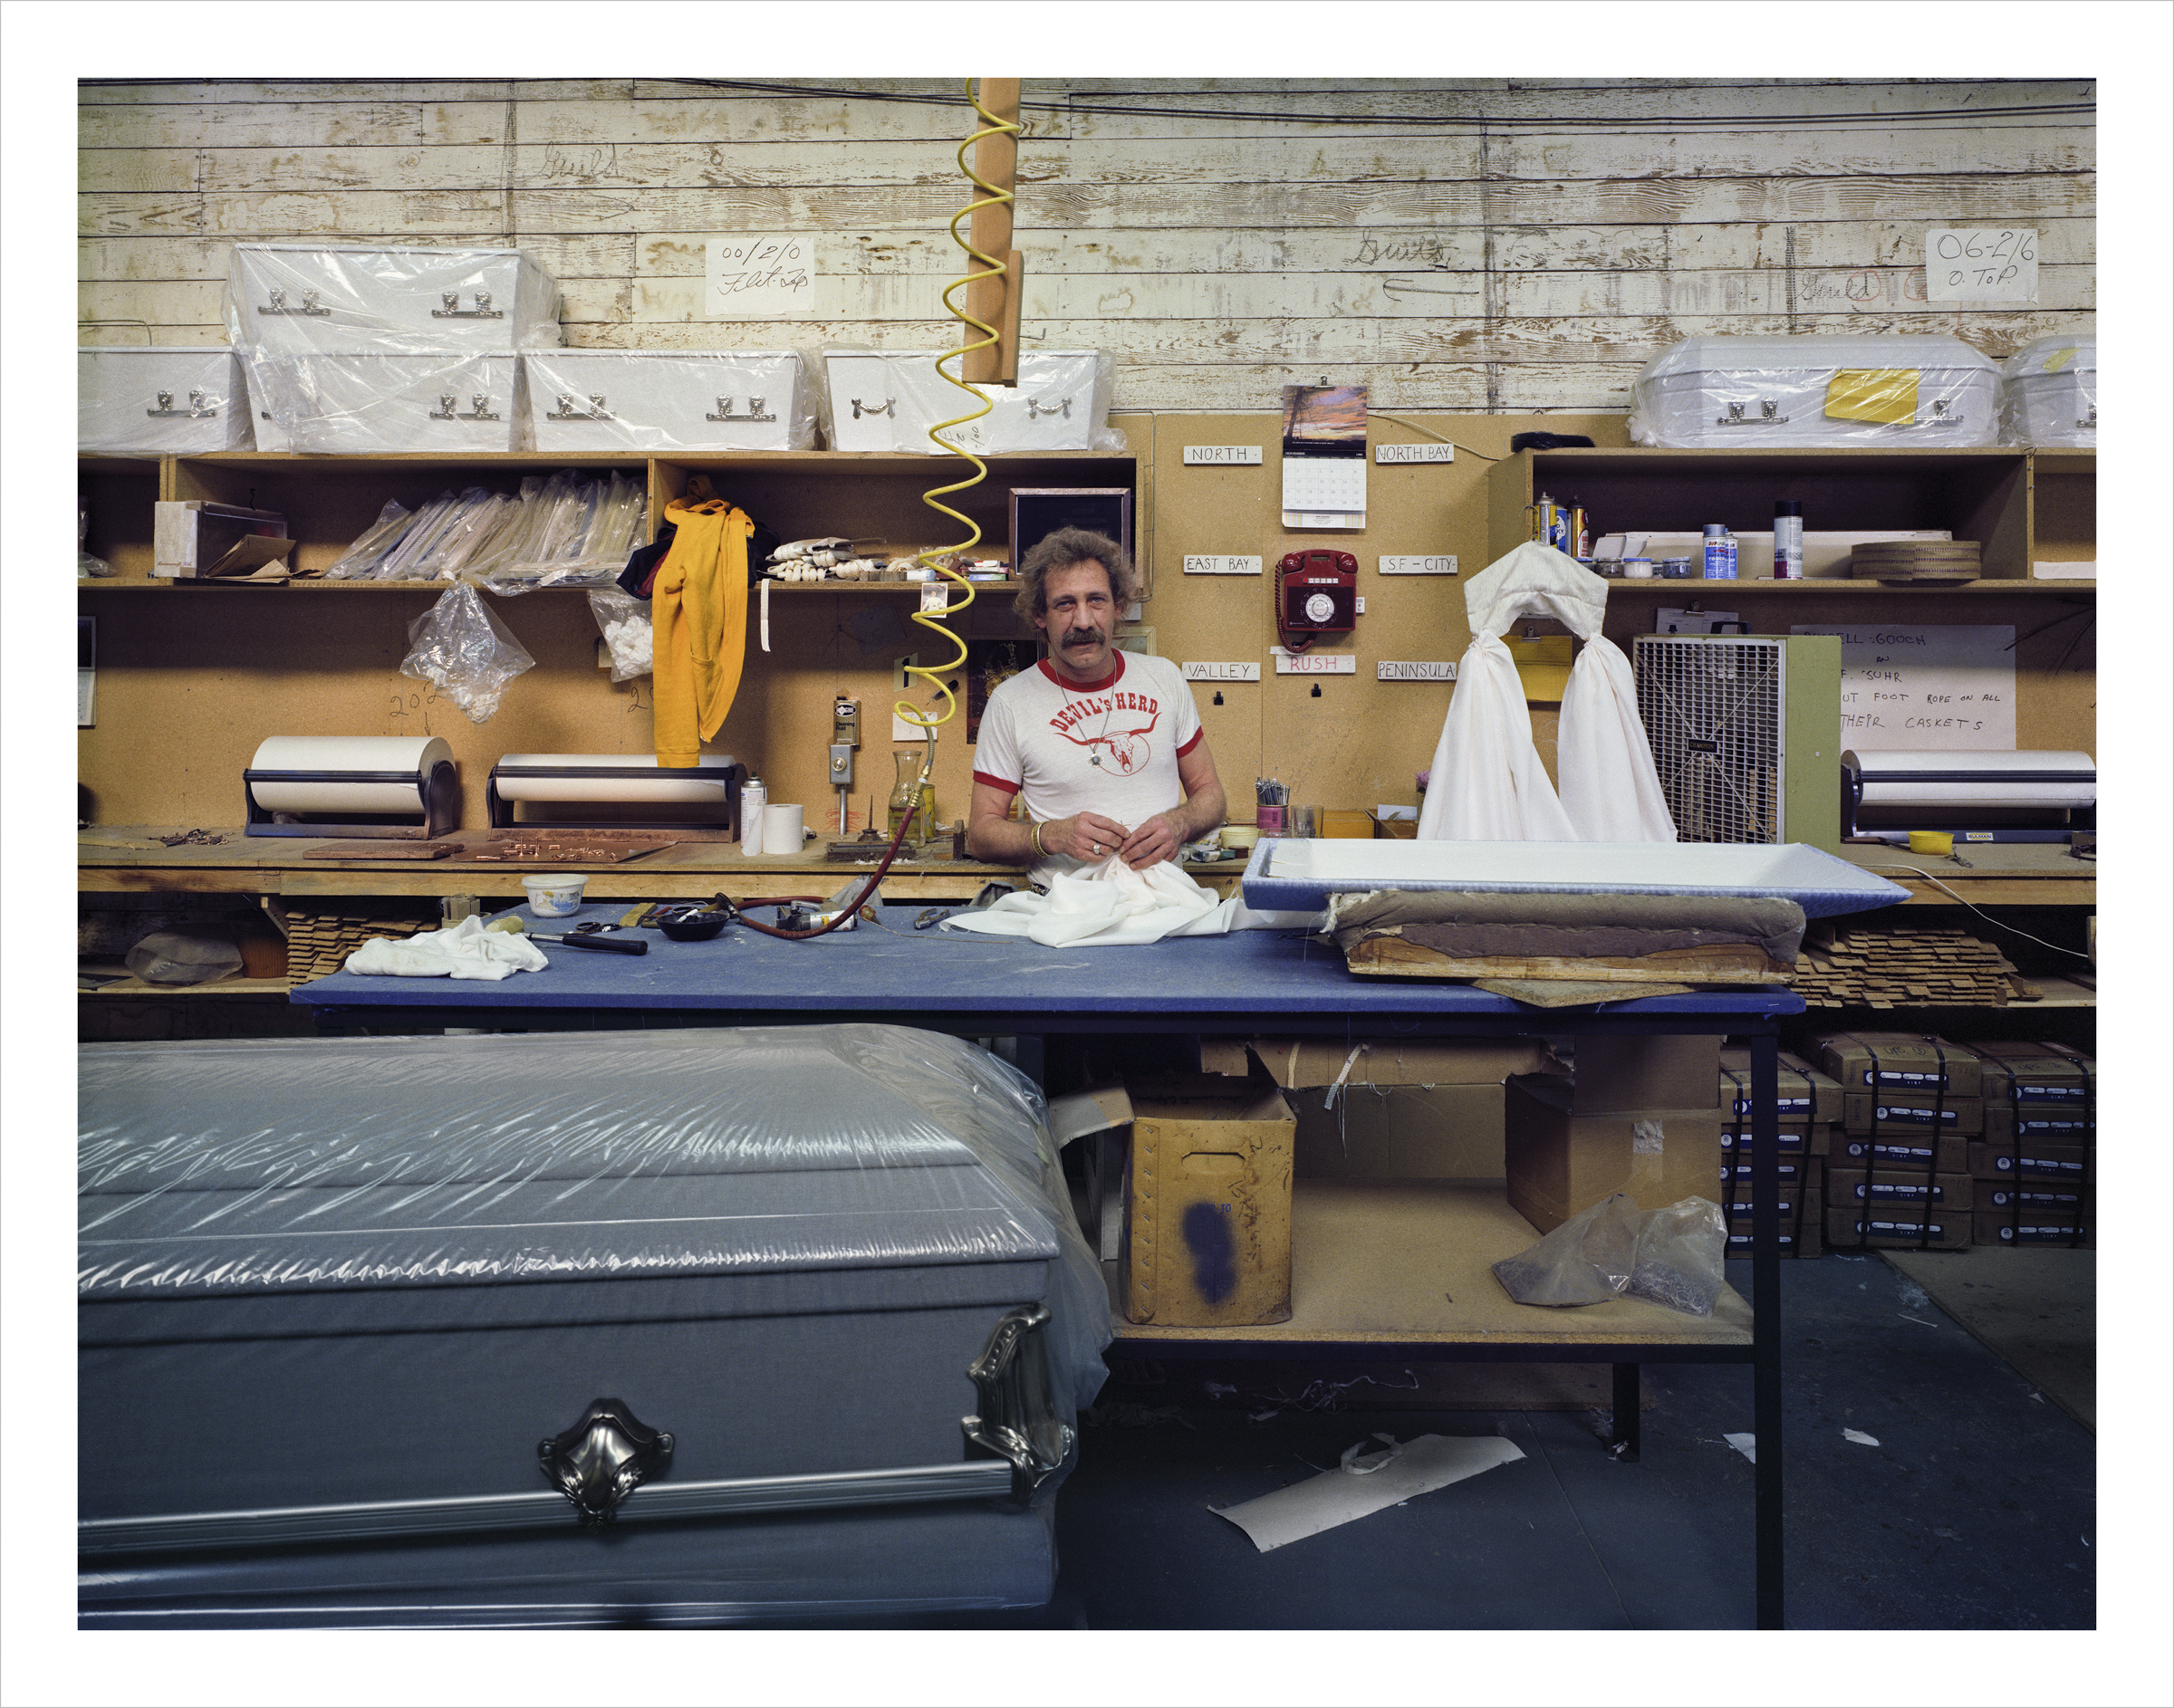 Harry Smith, Bay Casket Company, 1020 Folsom Street , 1980 Archival Pigment Print, 2016 16 x 20 inches, edition of 5 20 x 24 inches, edition of 2 30 x 40 inches, edition of 2